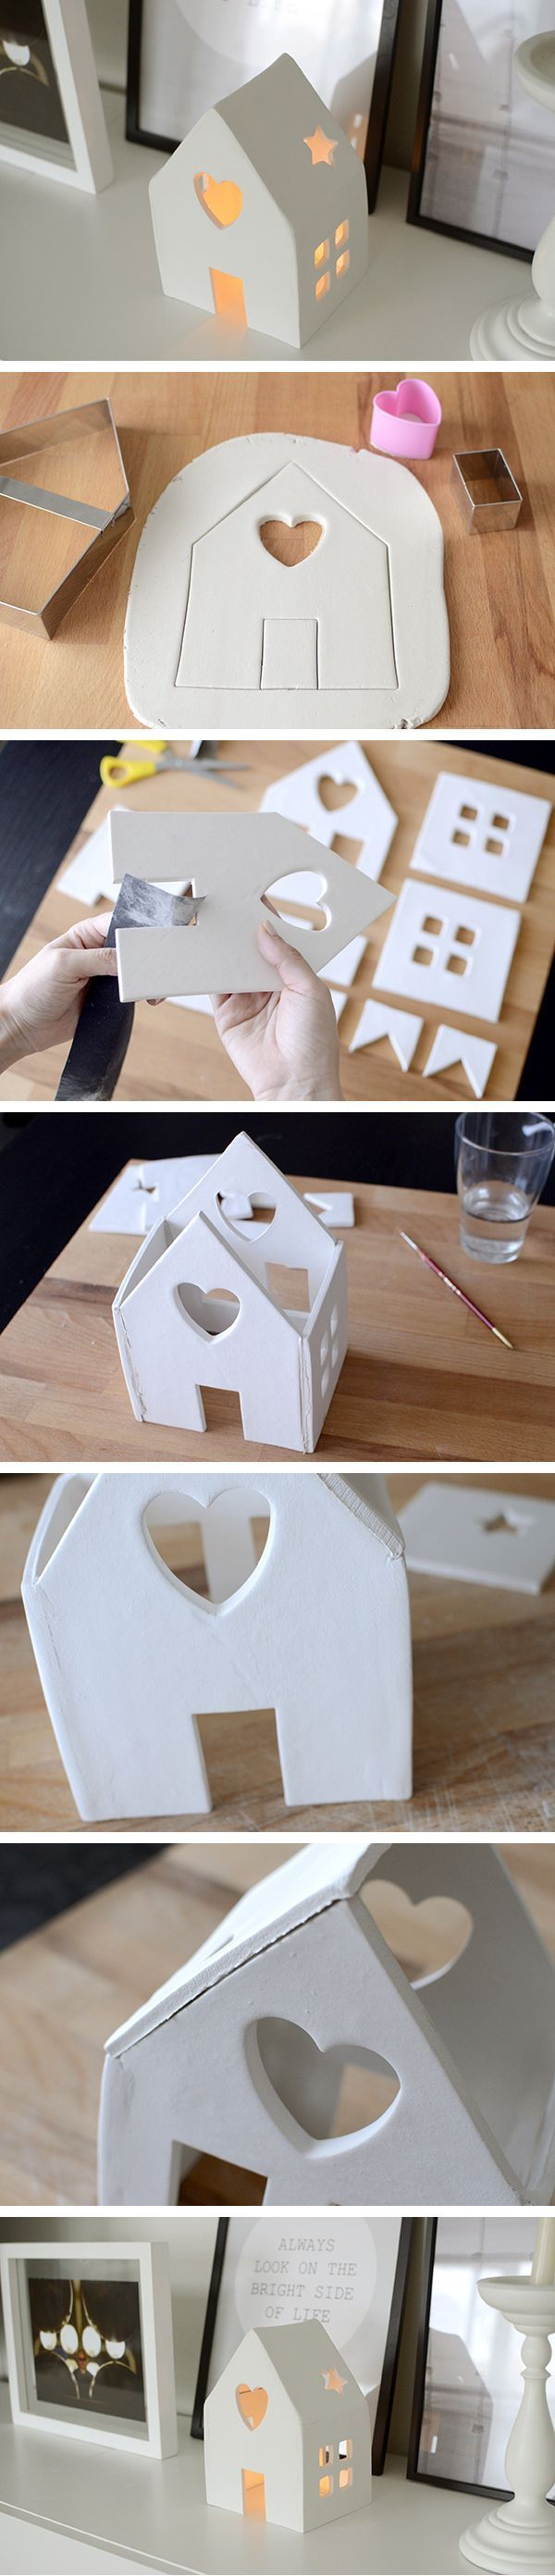 DIY: House candleholder with air dry clay - DIY: casita portavelas con pasta de modelar